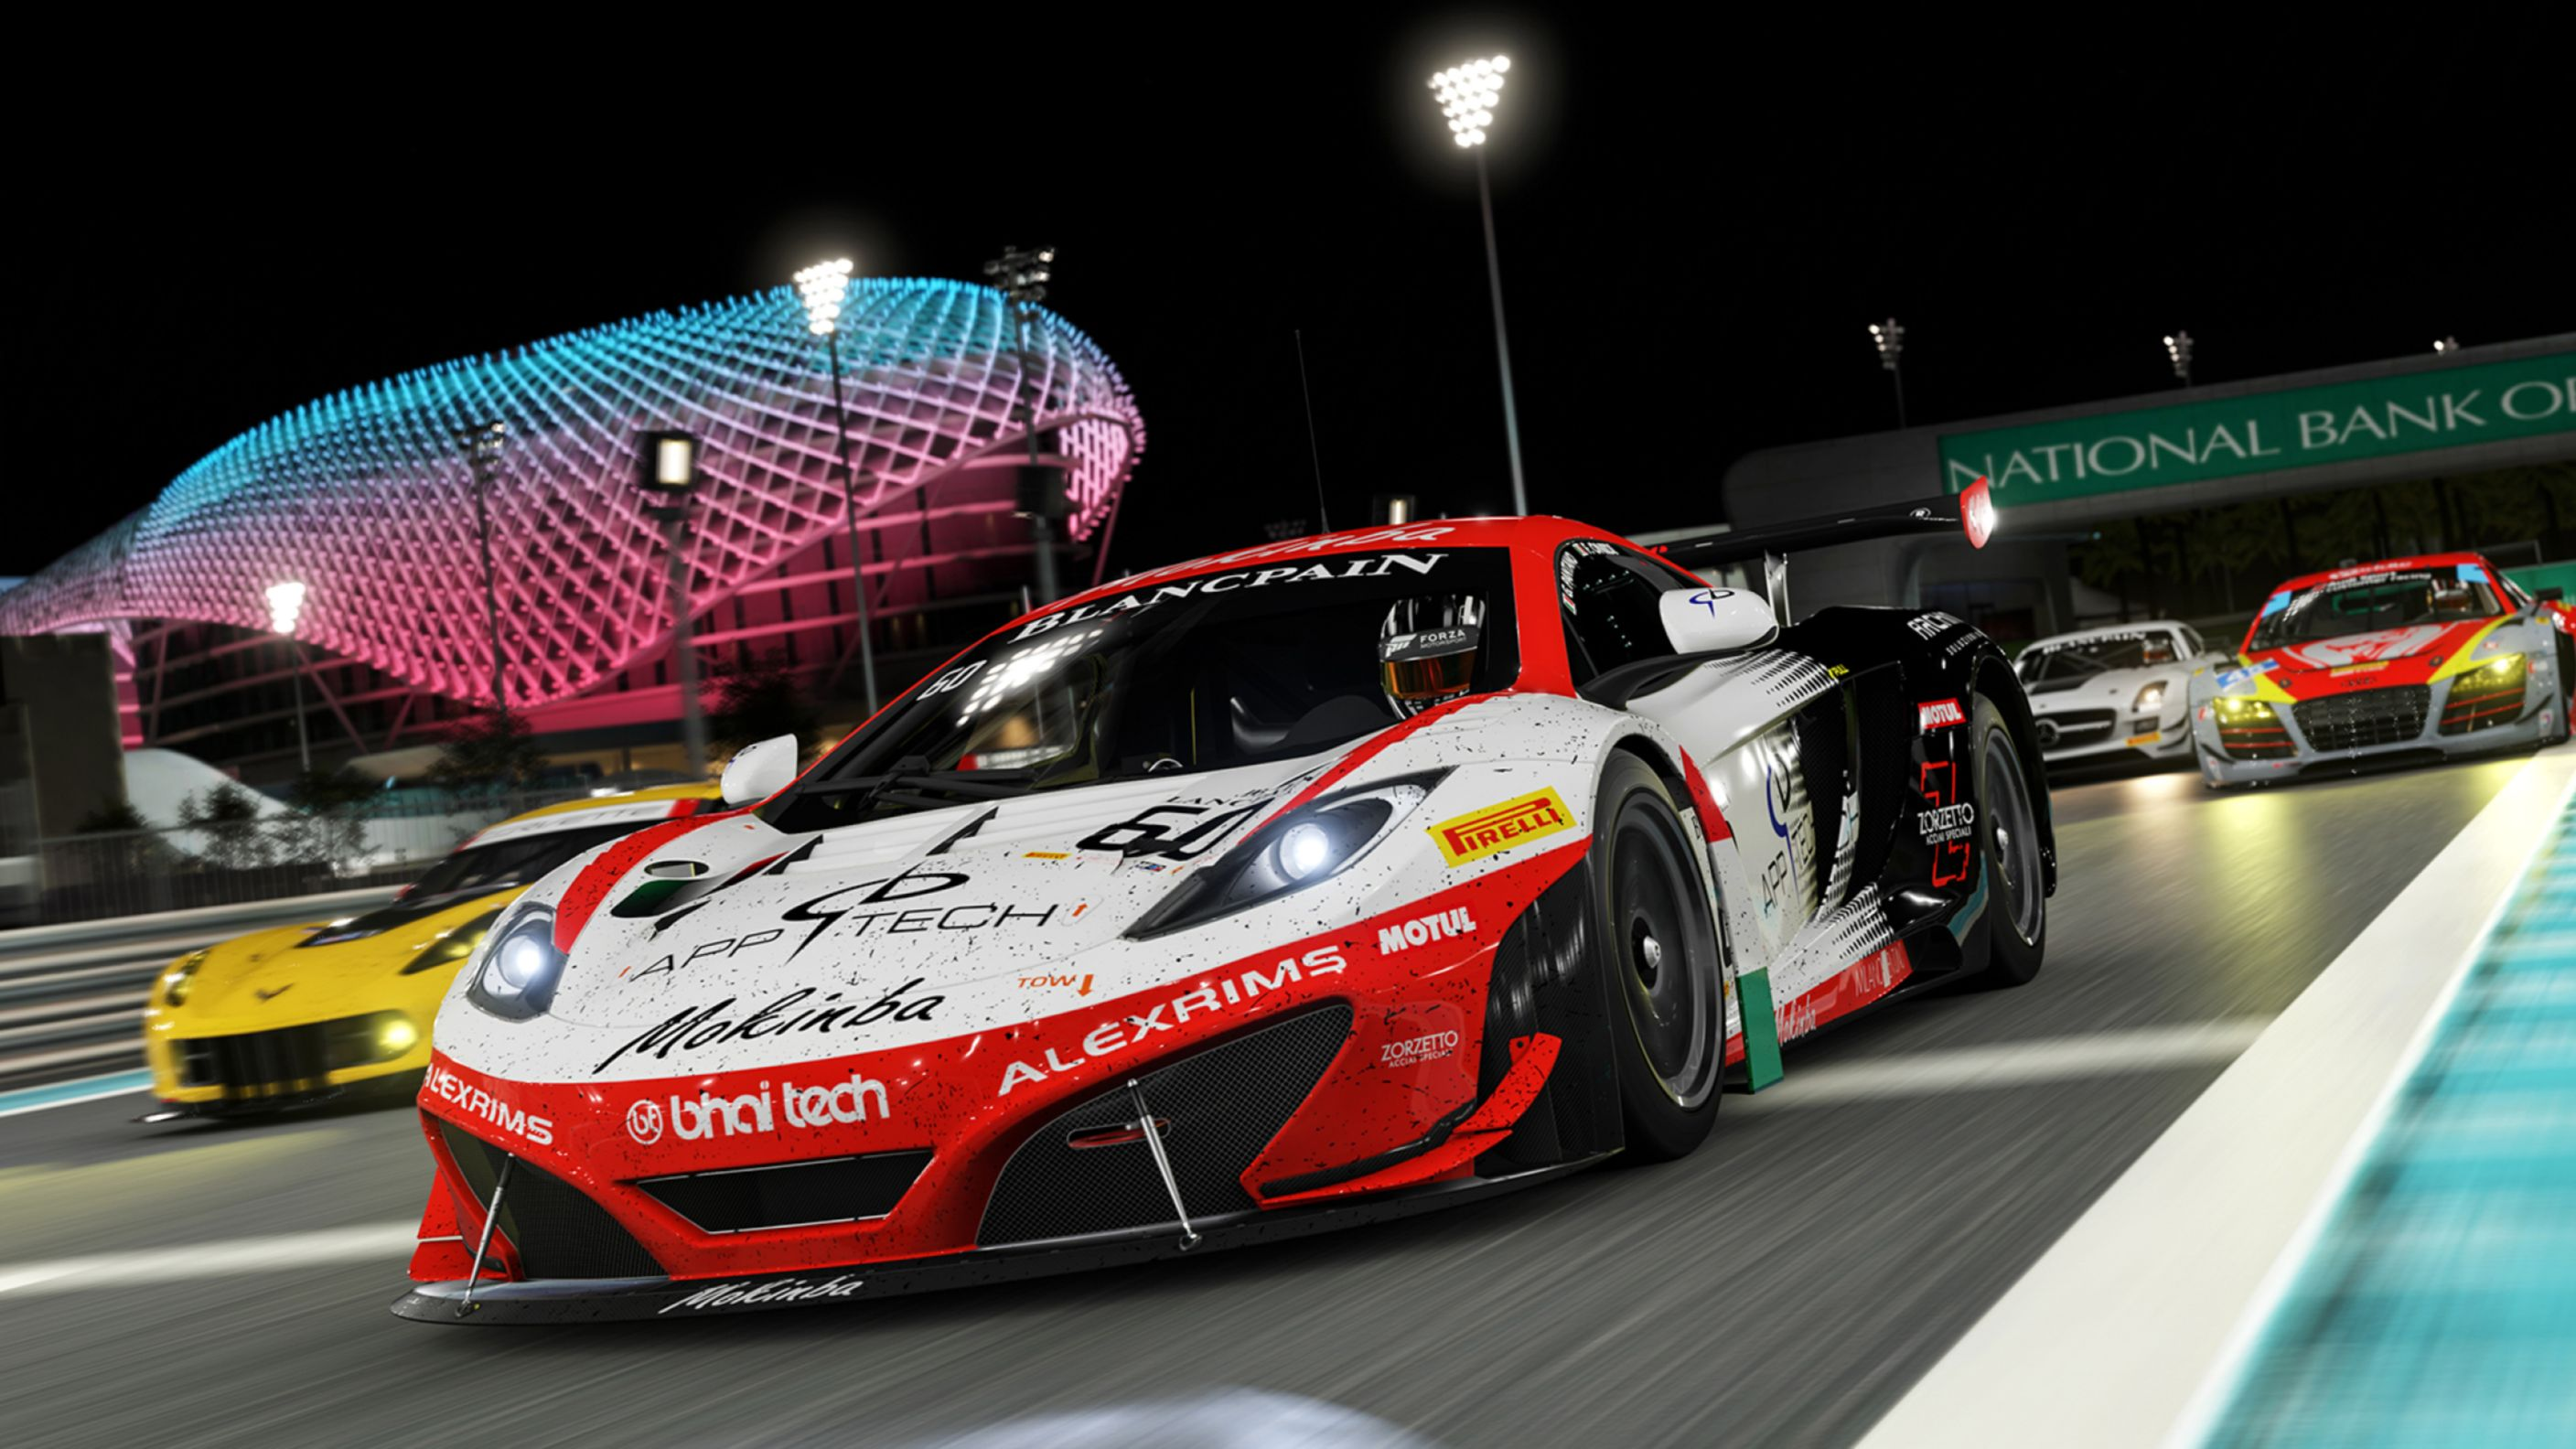 Download free HD Forza Motorsport 6 Night Race HD Wallpaper, image